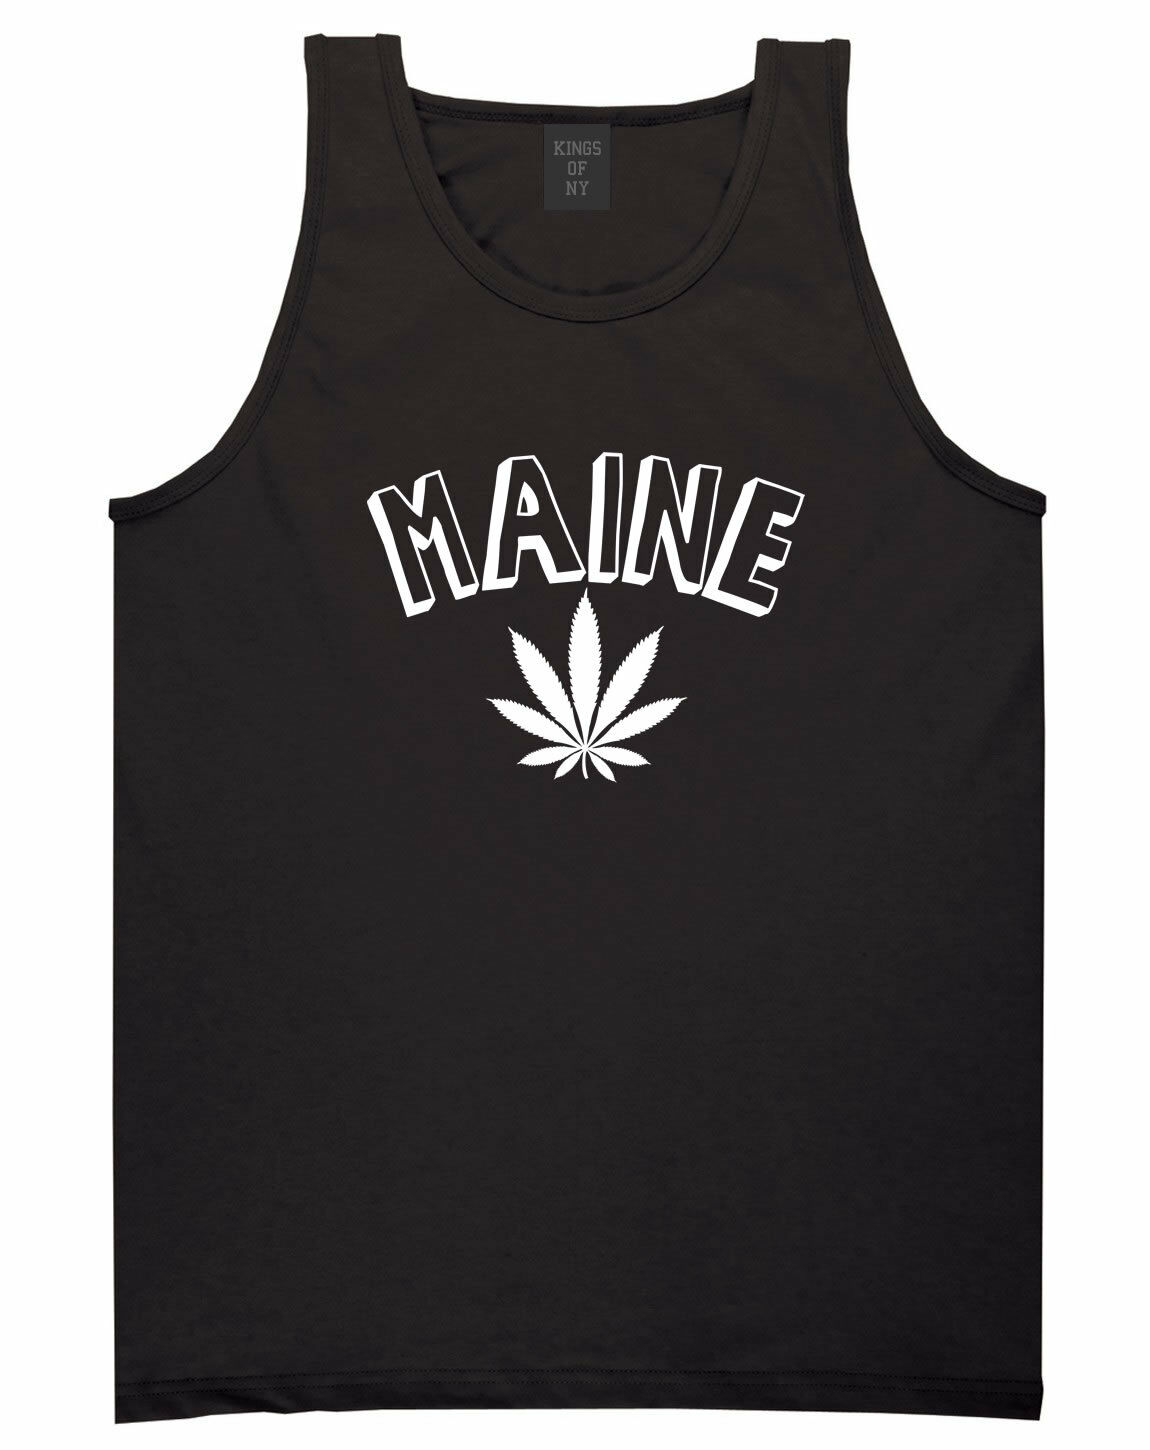 Marijuana Weed Maine USA State ME Tank Top T-Shirt 1